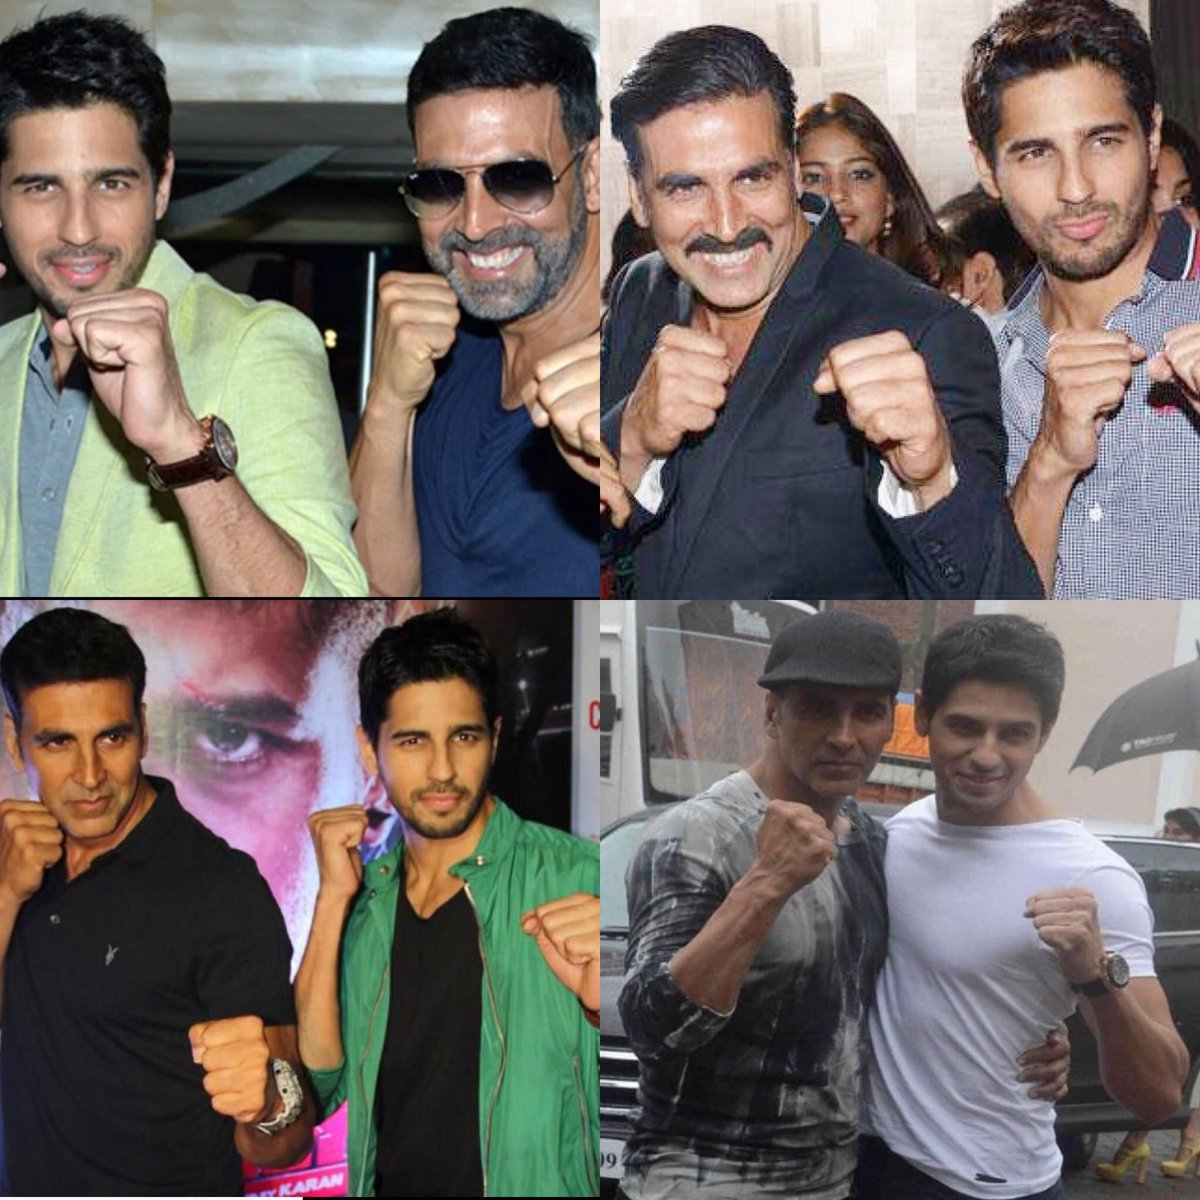 Seems like we need to meet soon to strike a new pose, until then wishing you a power-packed year! Happy birthday brother 🤗 @SidMalhotra